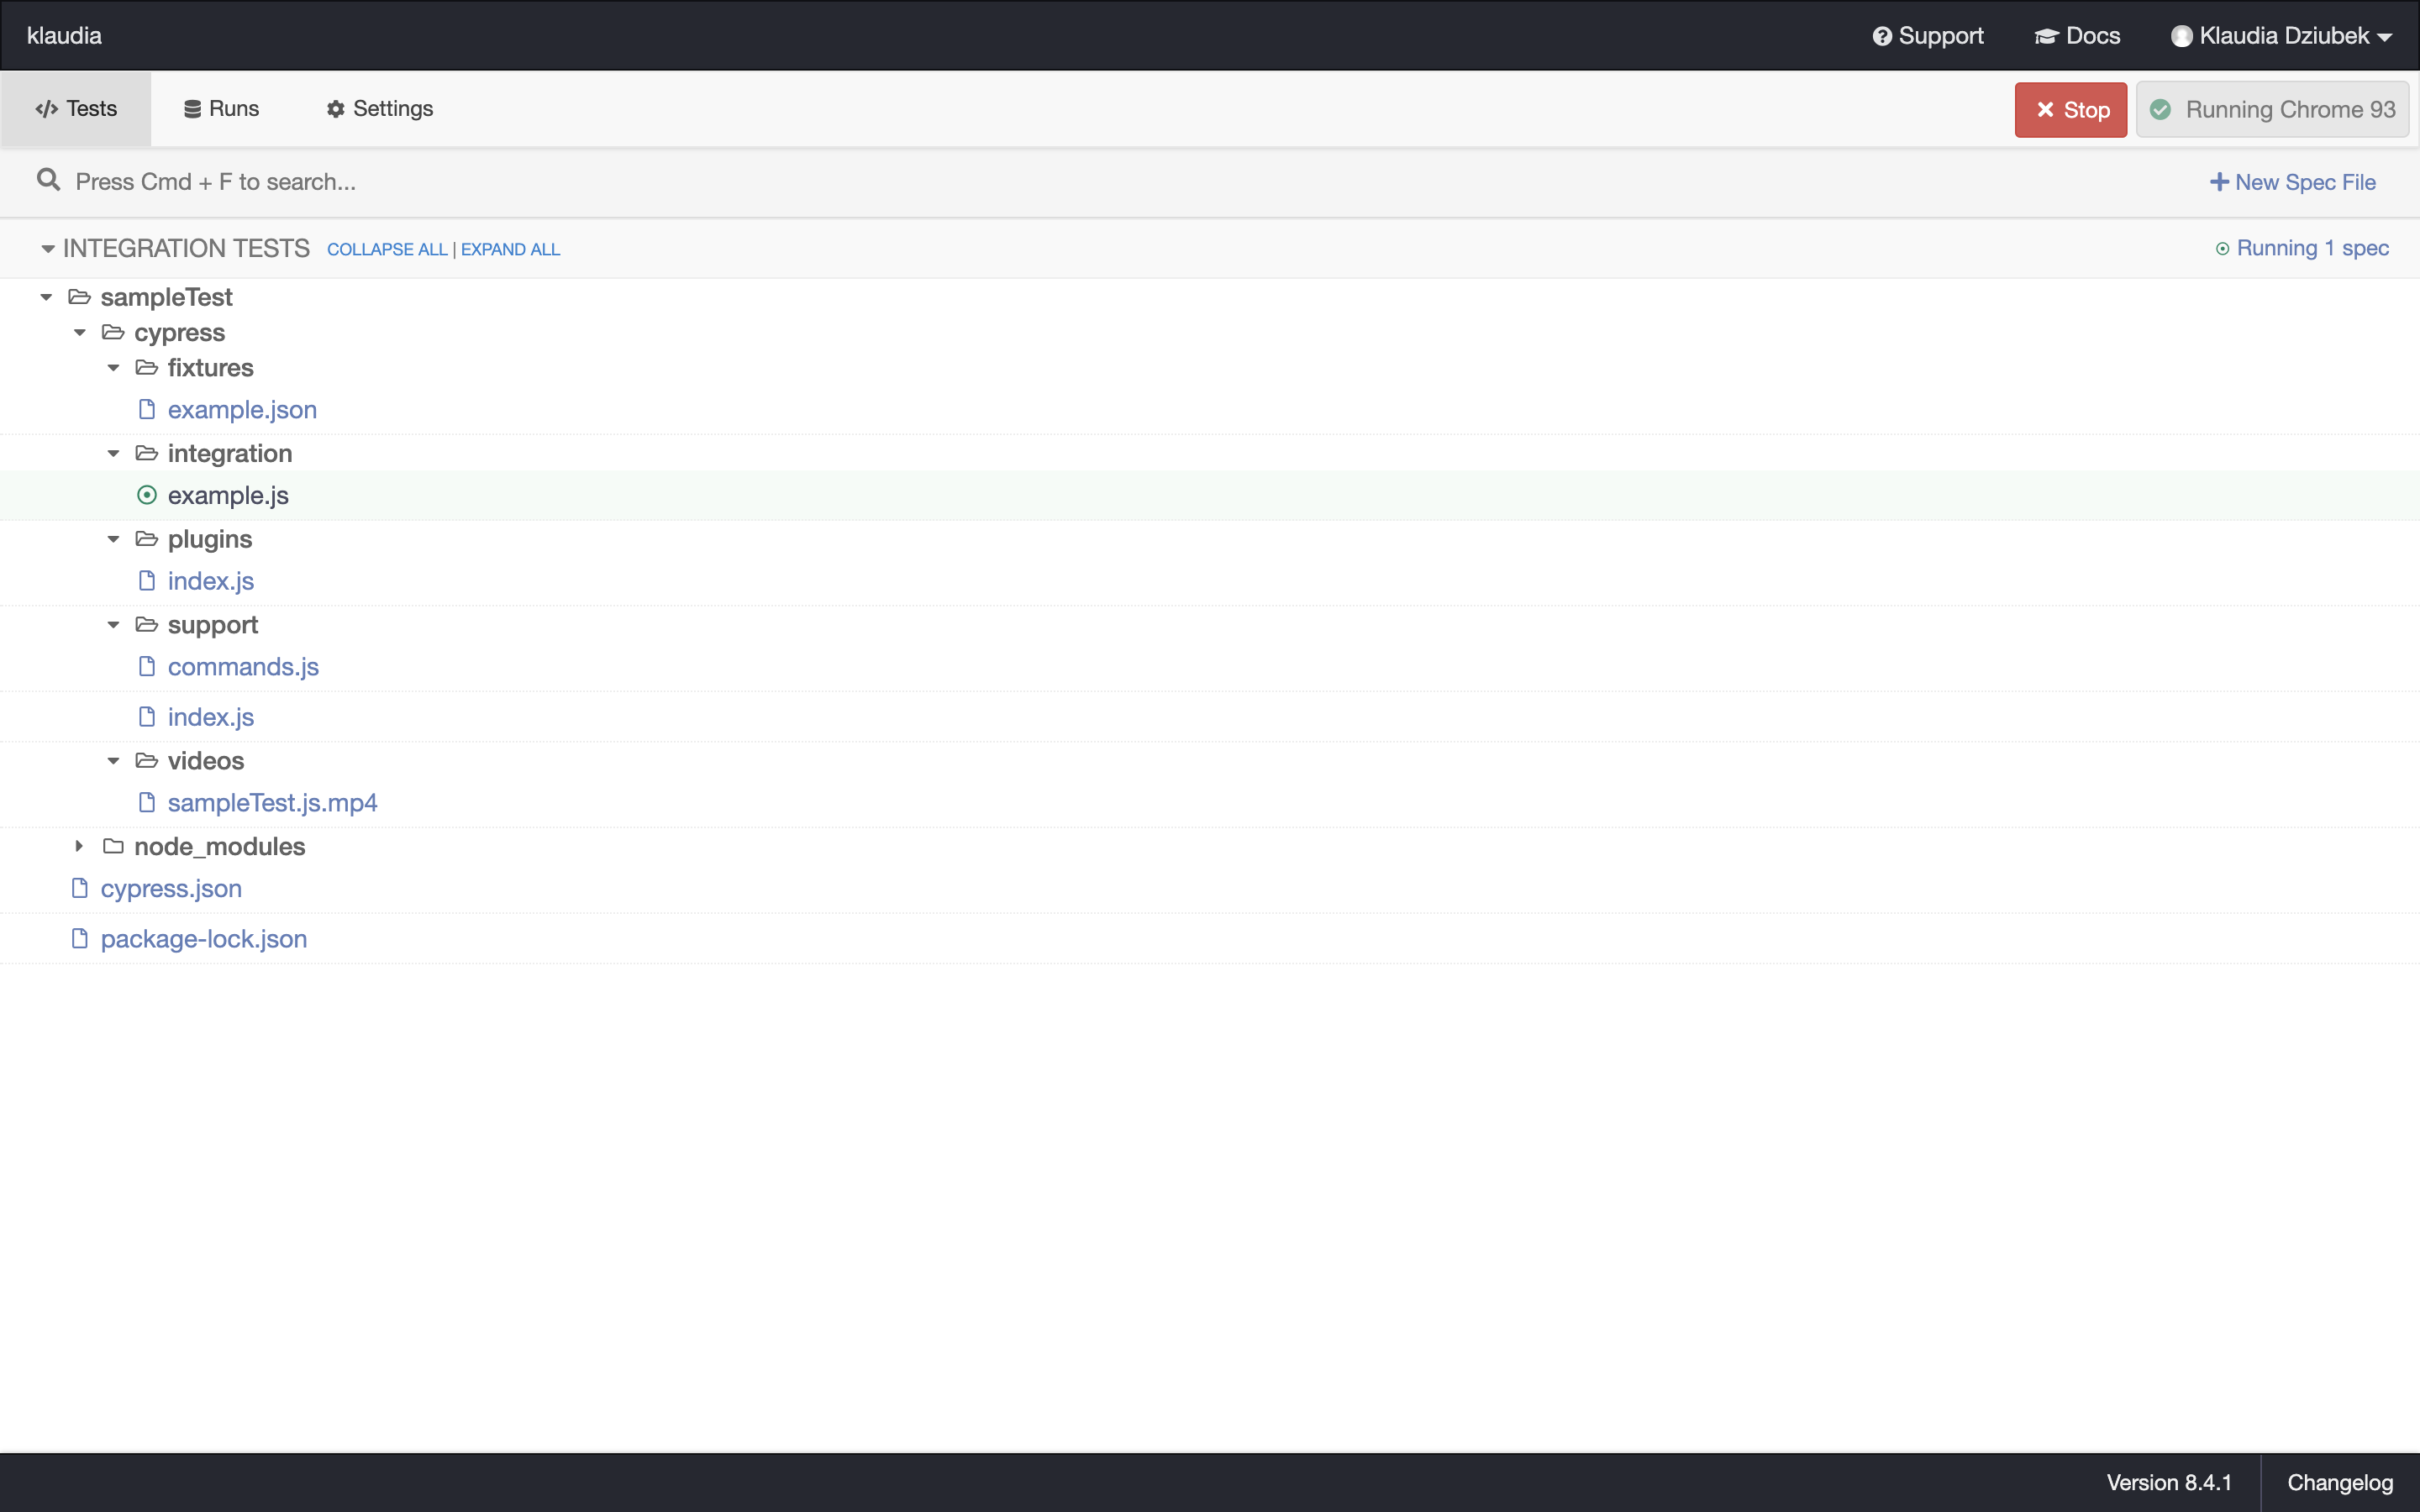 We clicked Run 1 integration spec and we can see the following output.